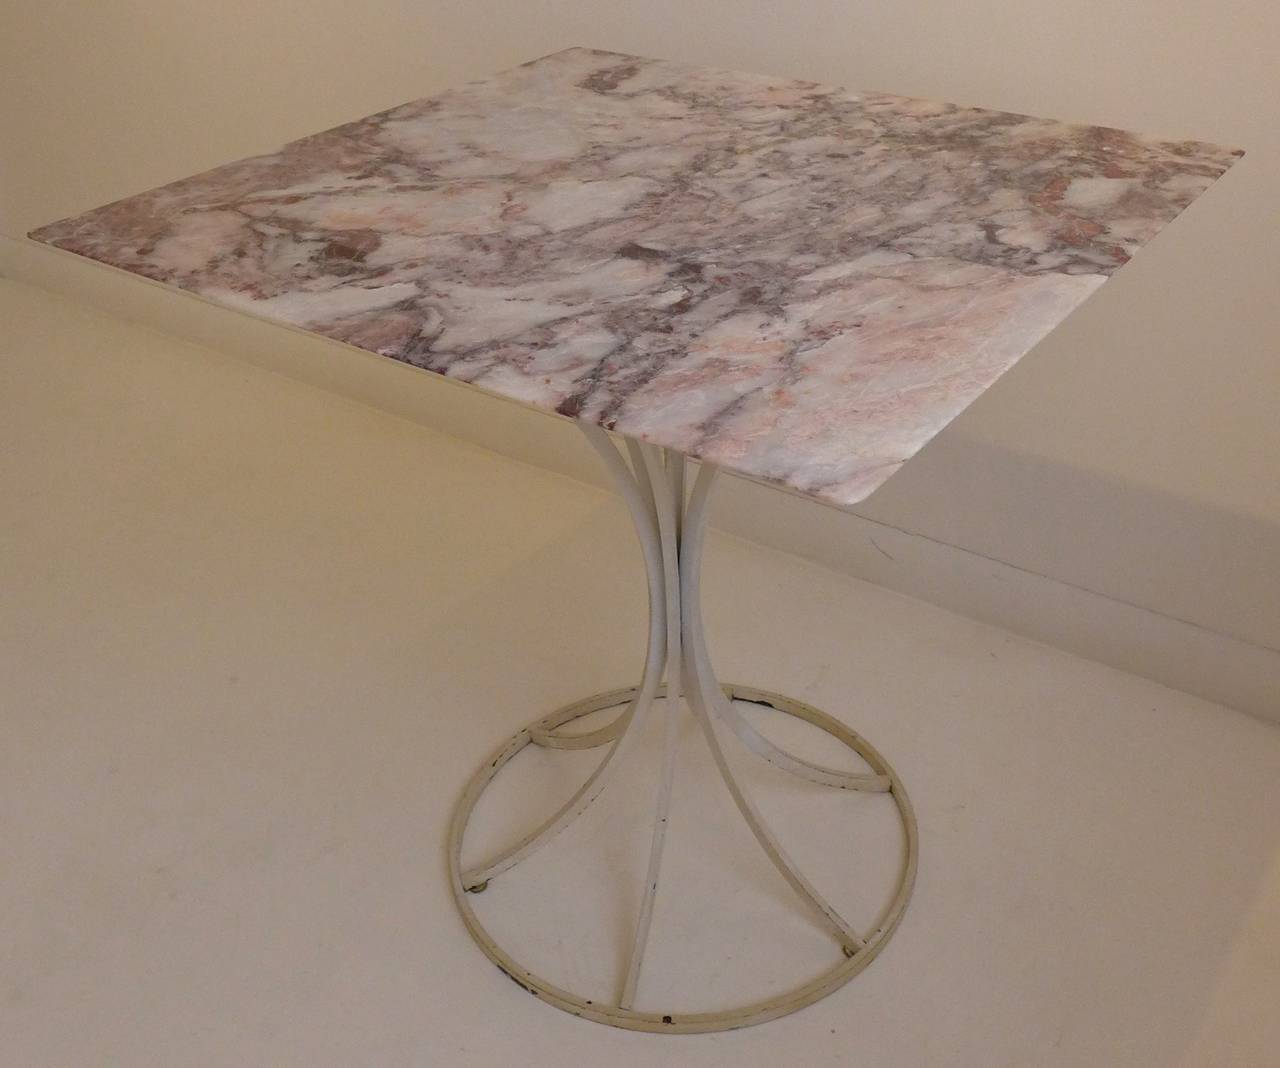 Dining or cafe table with highly figured rose marble top and lacquered steel petal base. Designed by Estelle and Erwine Laverne as part of their 1960s flower stem table line. A custom order with a 29